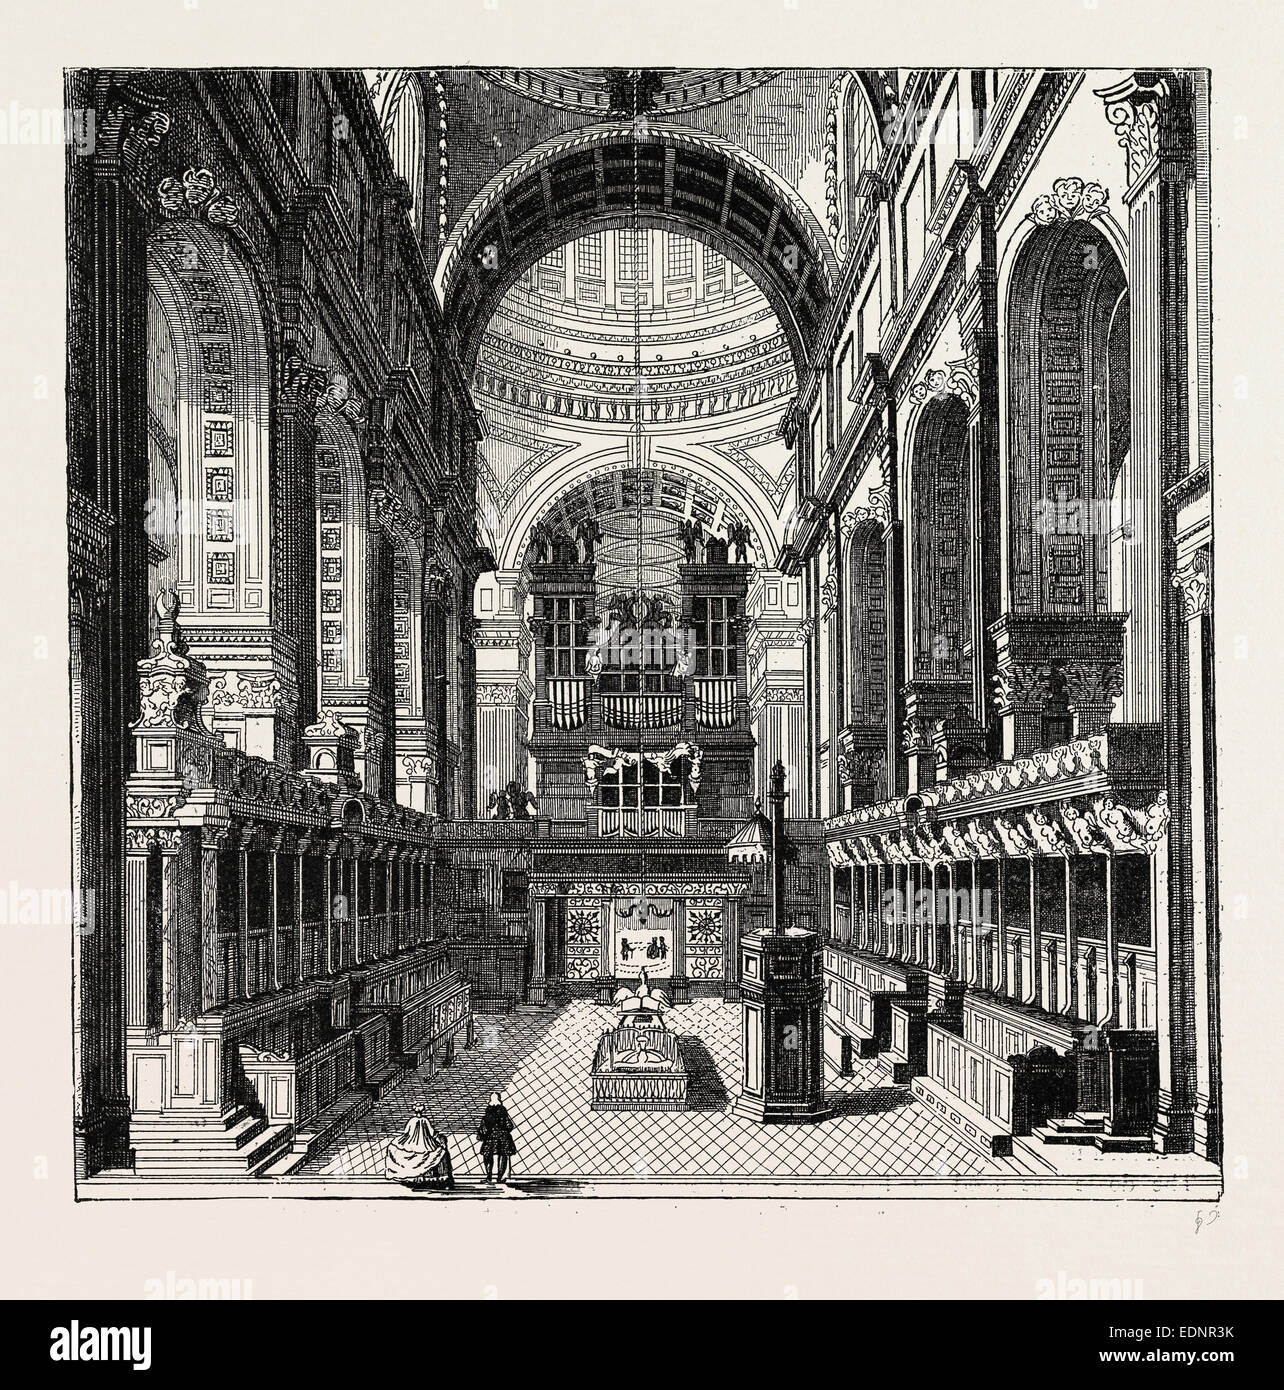 The Choir of ST. Paul, London, UK, 19th century engraving - Stock Image